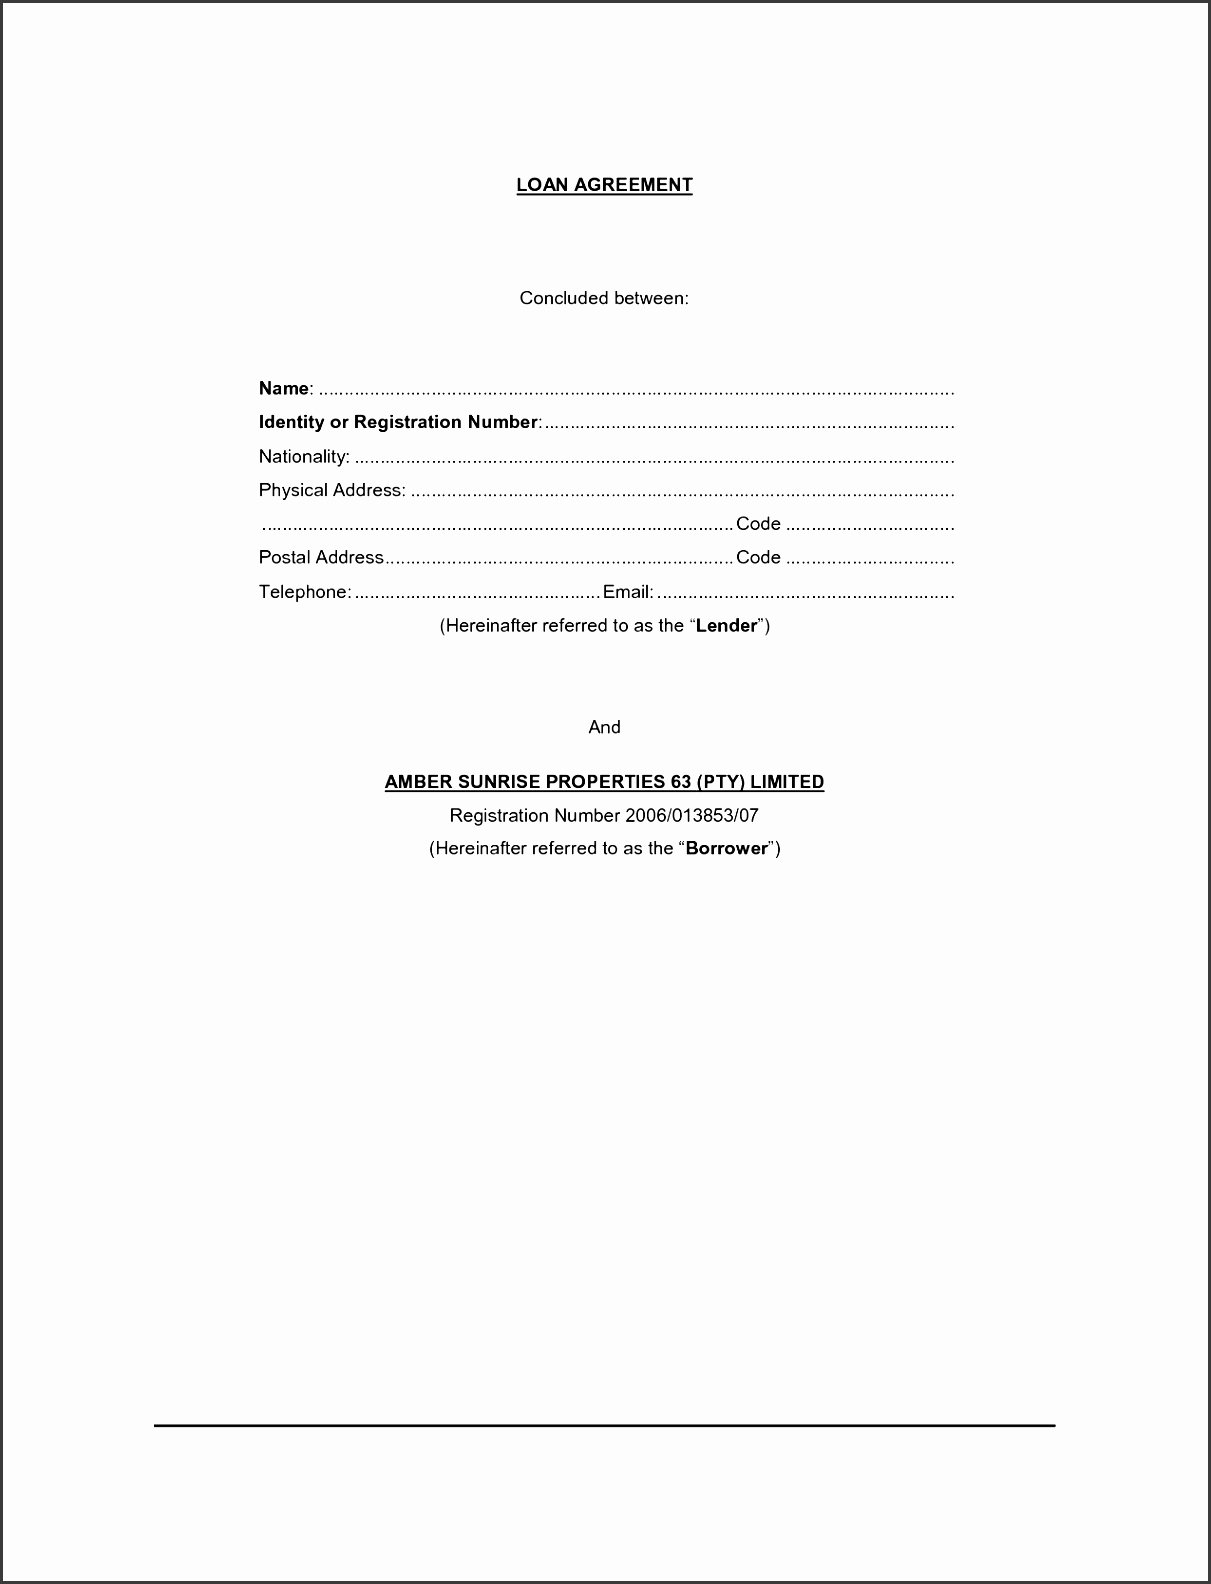 Simple Loan Application form Template Best Of 11 Vehicle Loan Agreement Template Sampletemplatess